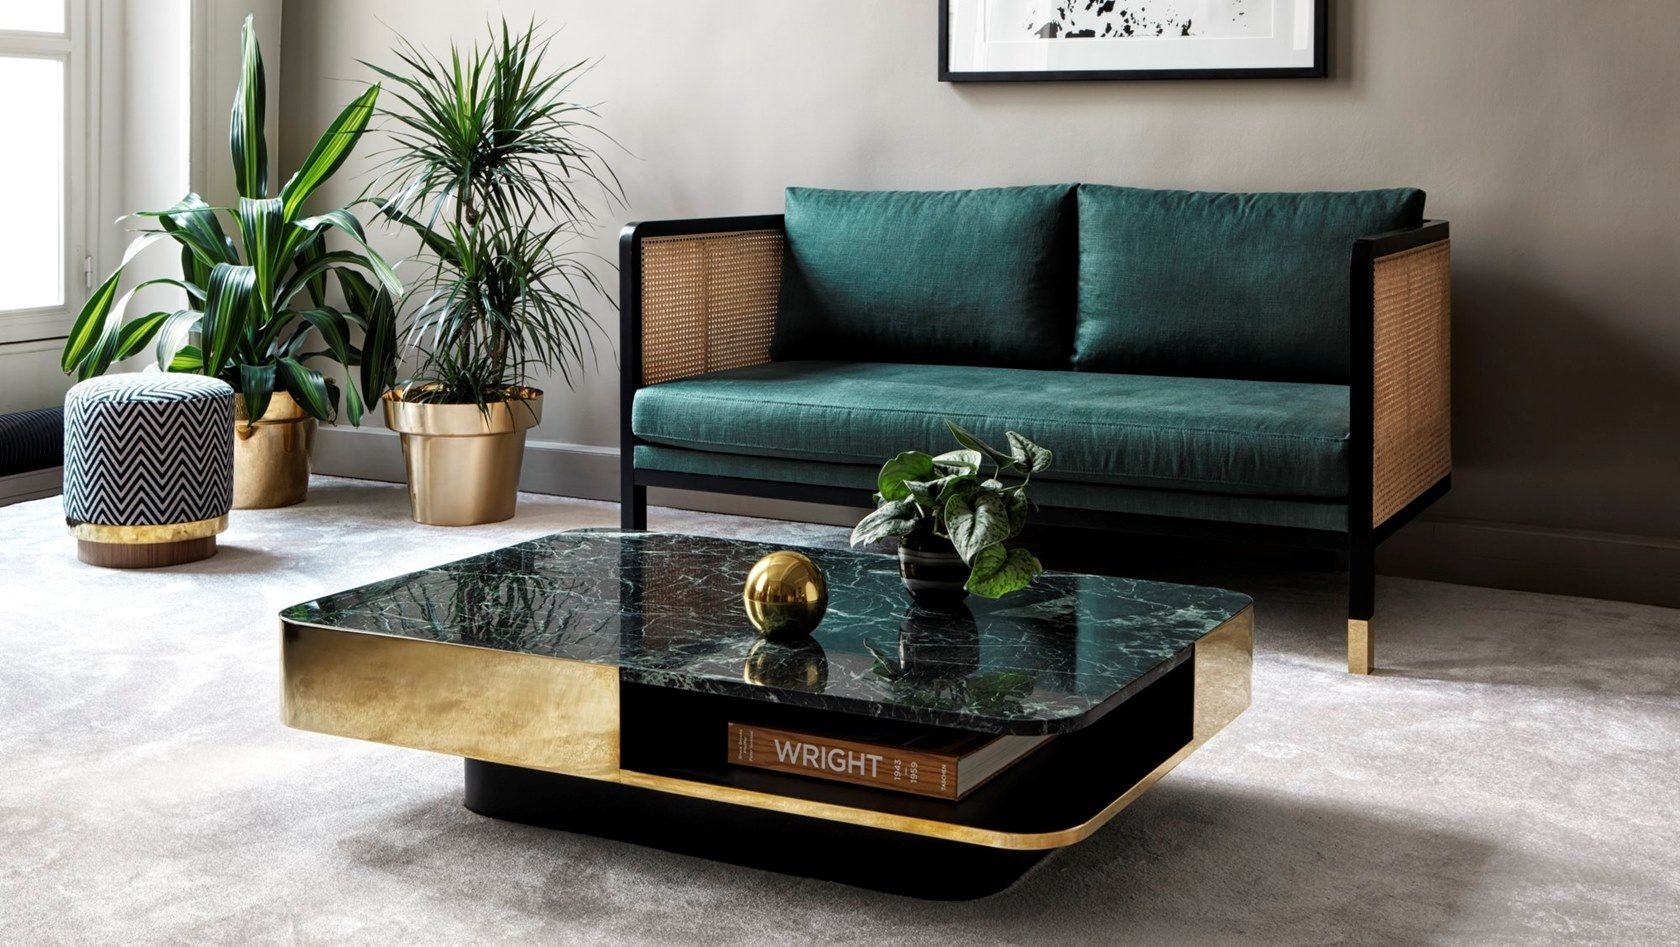 Marble Coffee Table By Red Edition Marble Coffee Table Living Room Sofa Table Design Center Table Living Room